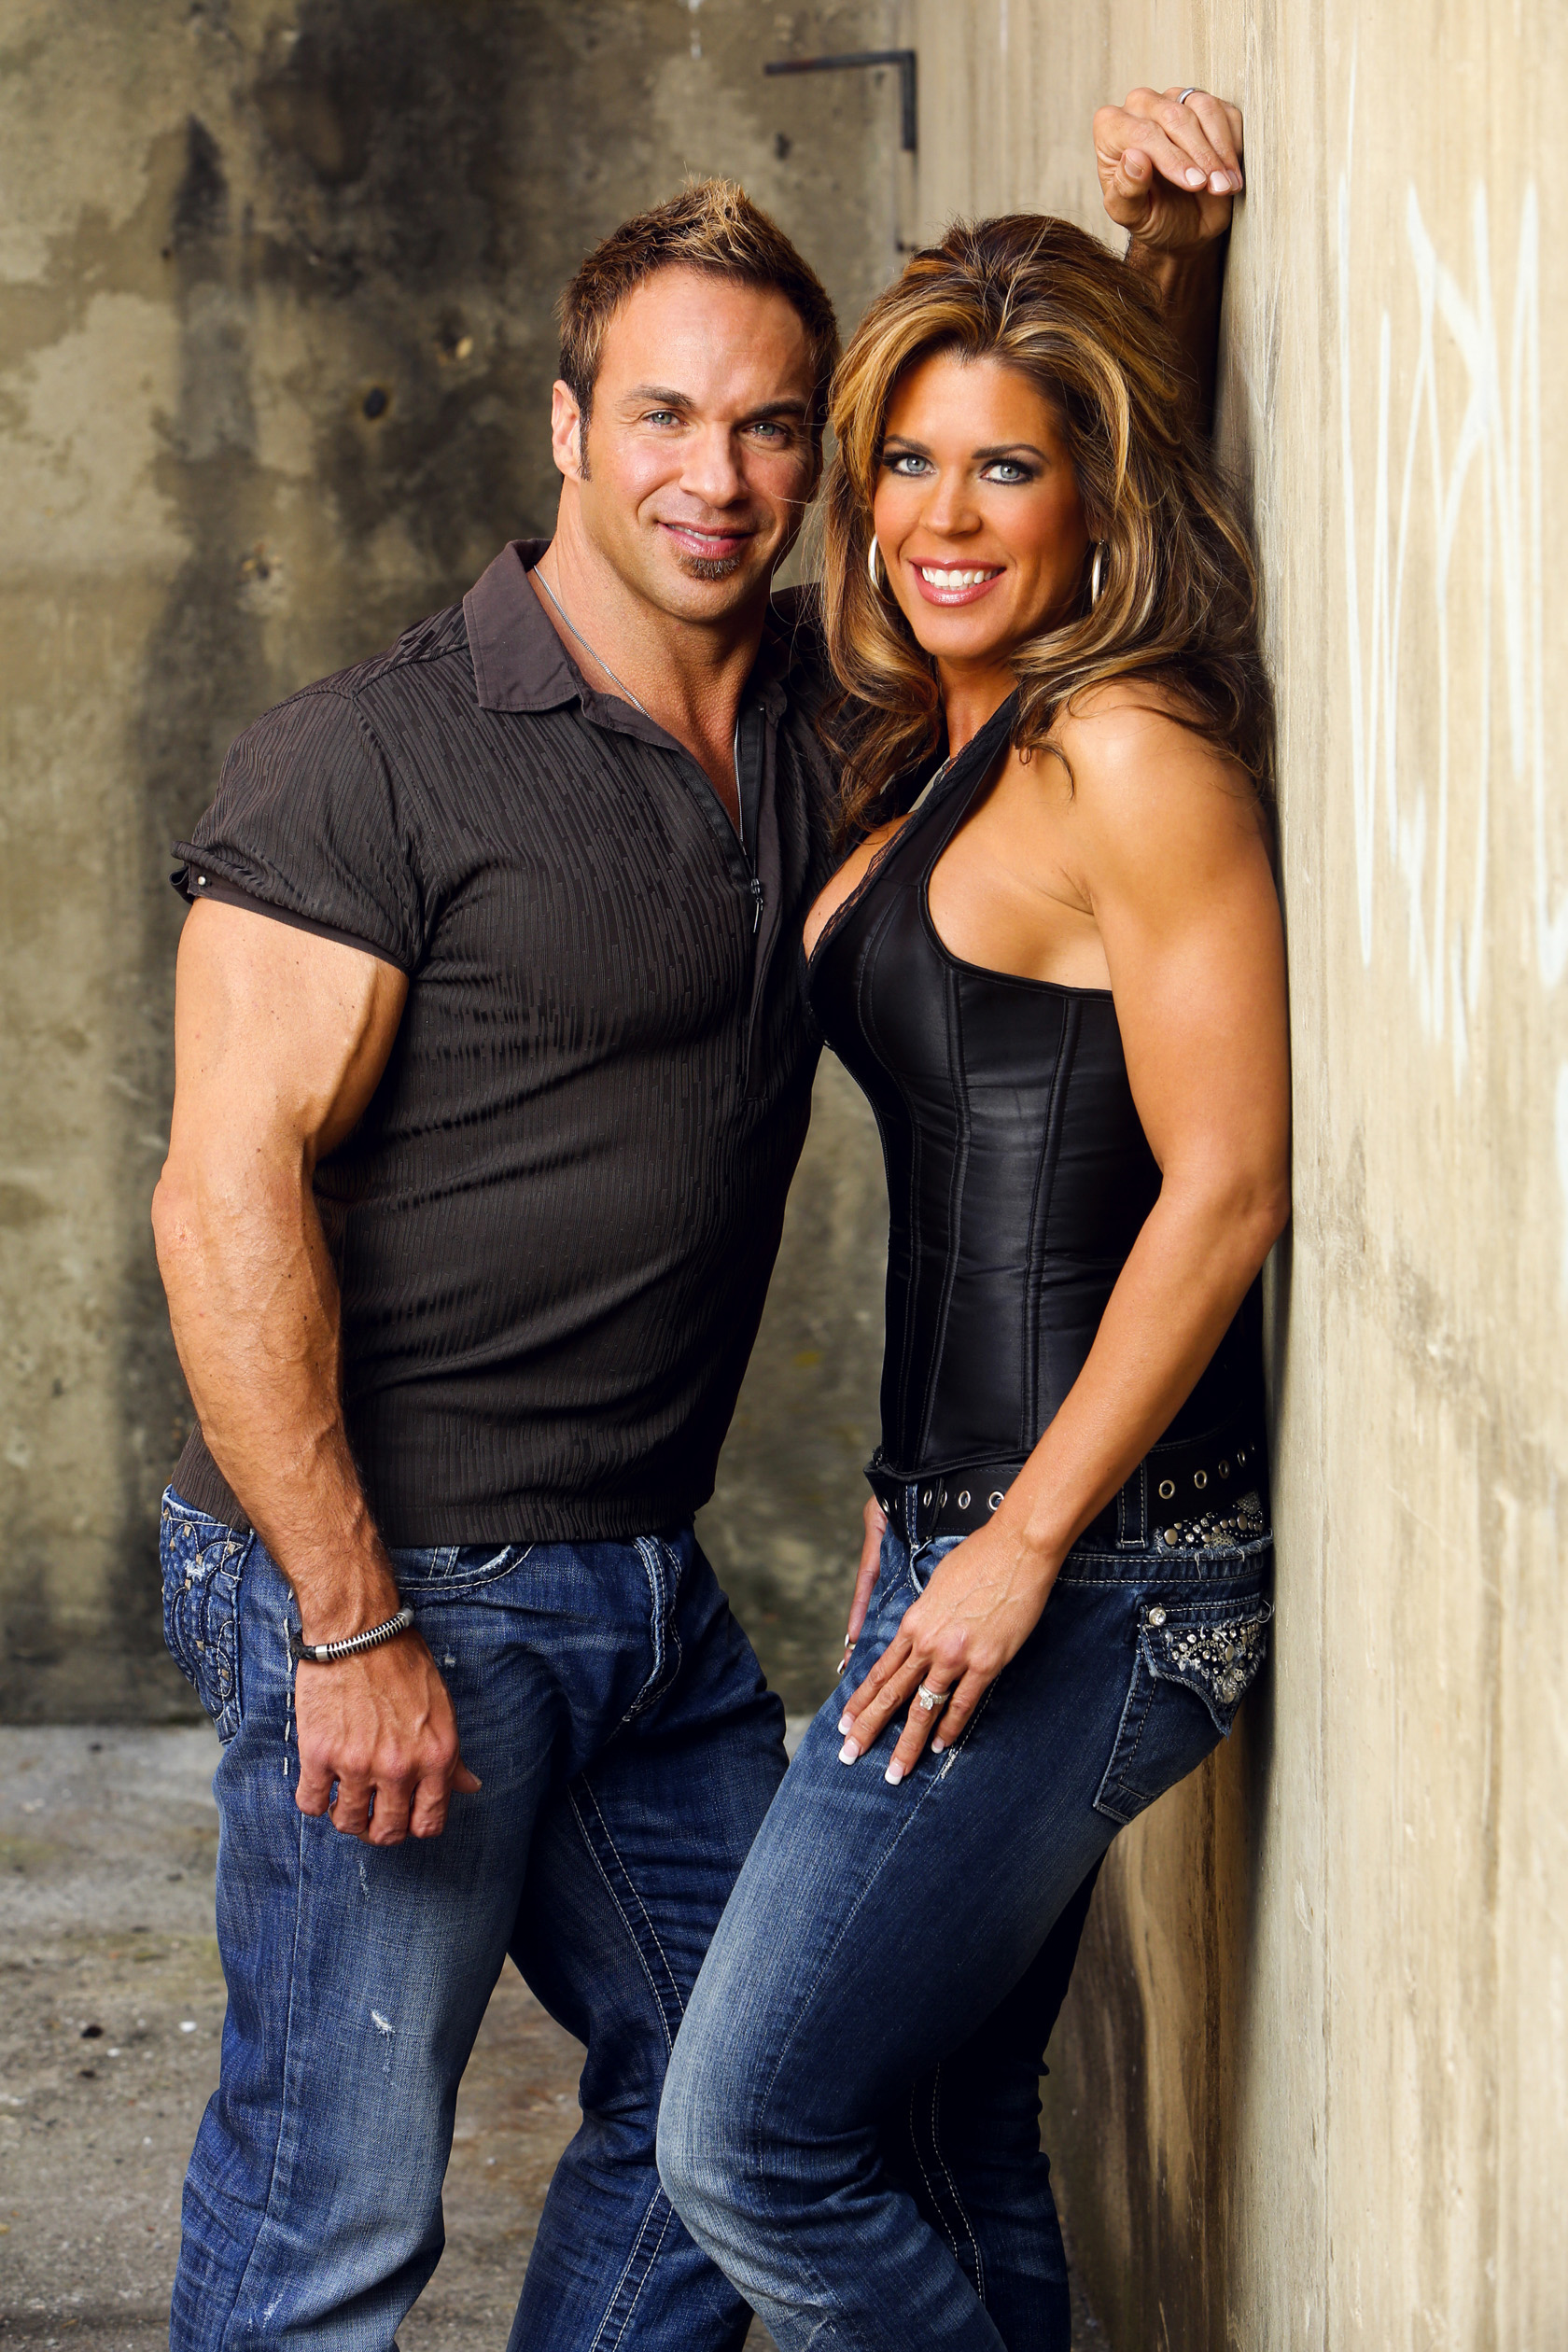 Scott and Michelle Williams. Personal Trainers in Knoxville, Tennessee. Offering nutrition consulting, concentrated work out plans, health coaching, competition preparation, sports training, and family health programs.